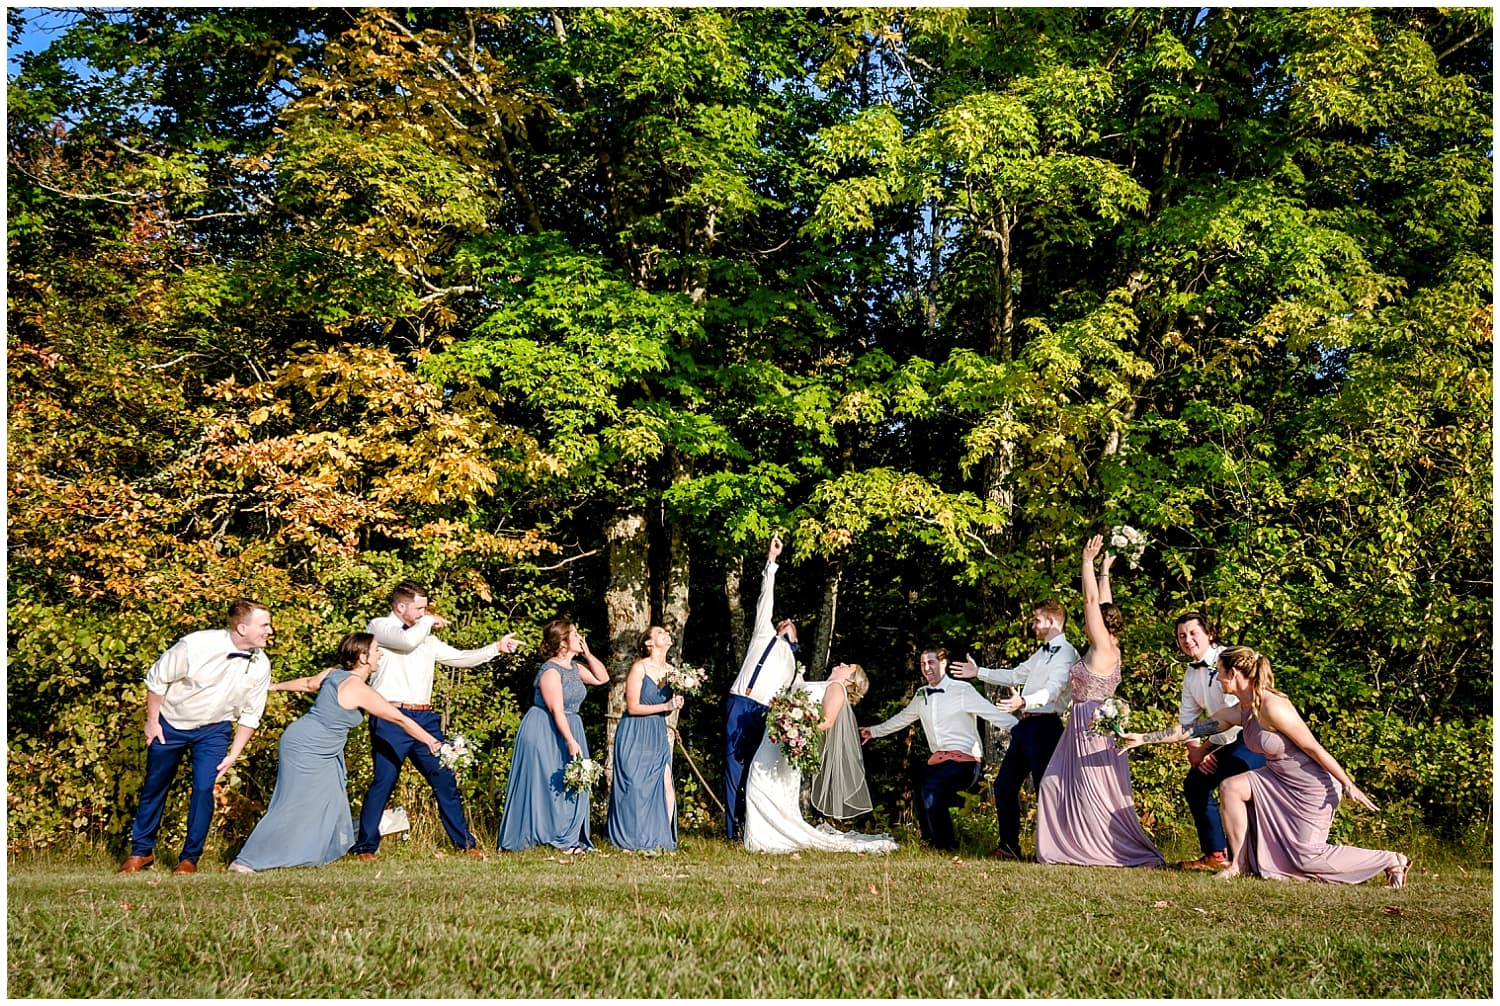 The wedding party ham it up with the bride and groom during wedding photos at the Barn at Sadie Belle Farm in Hantsport NS.